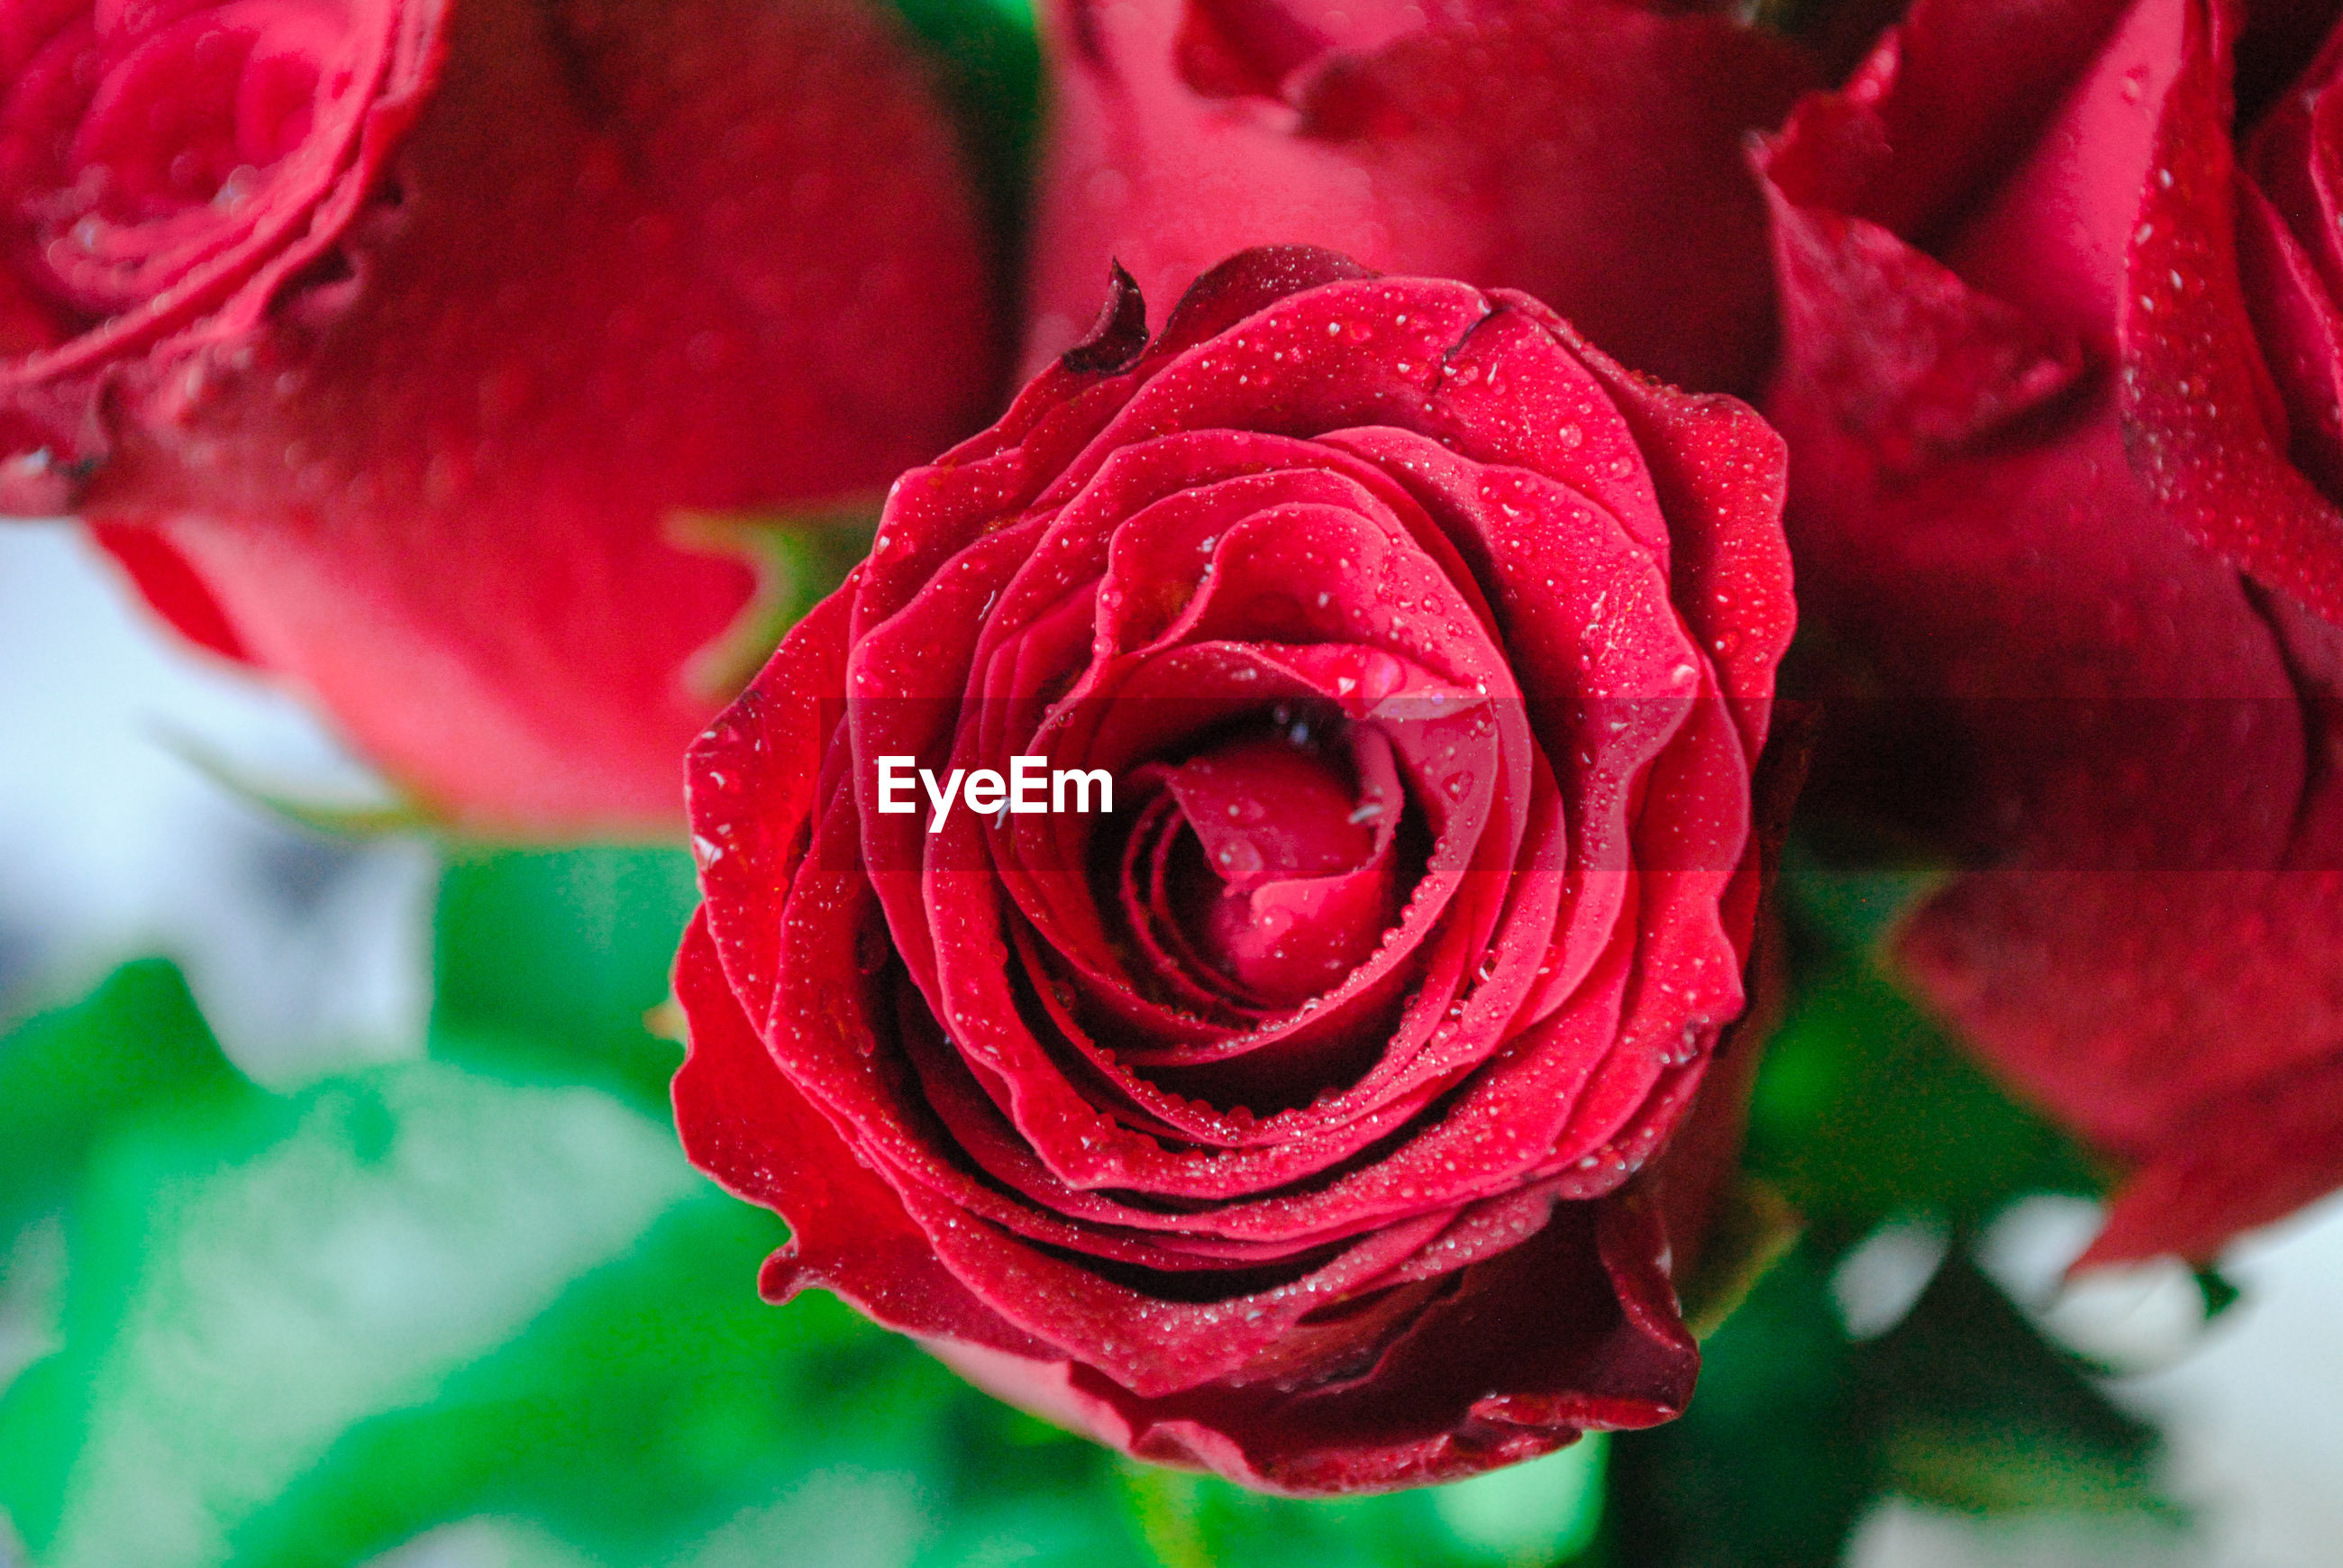 CLOSE-UP OF WET RED ROSE IN BLOOM